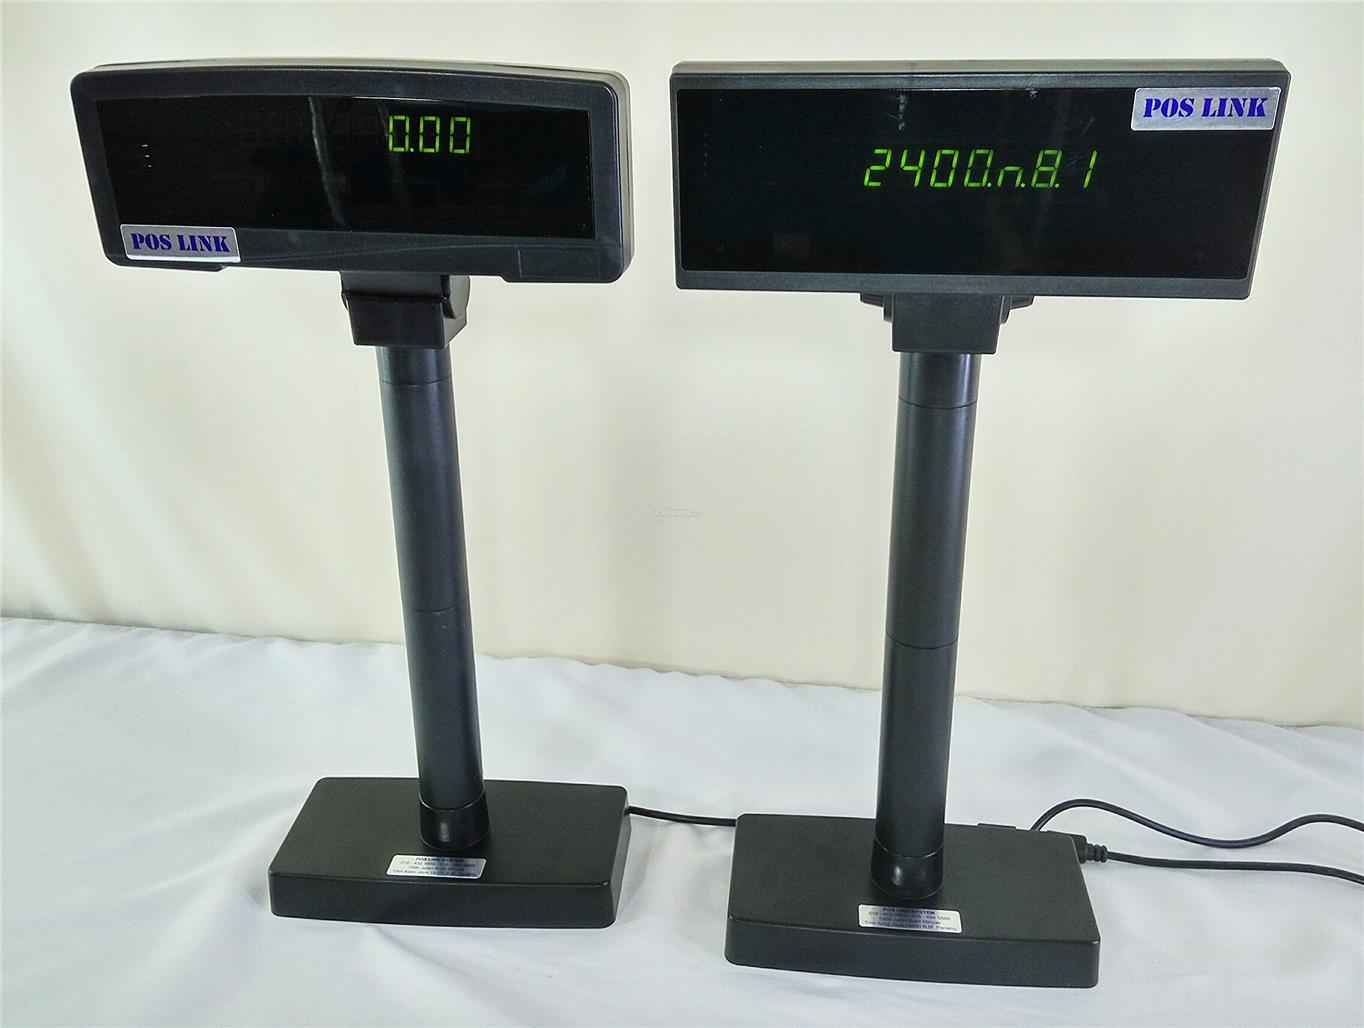 POS SYSTEM VFN 8 DIGITAL CUSTOMER POLE DISPLAY-USB/COM PORT